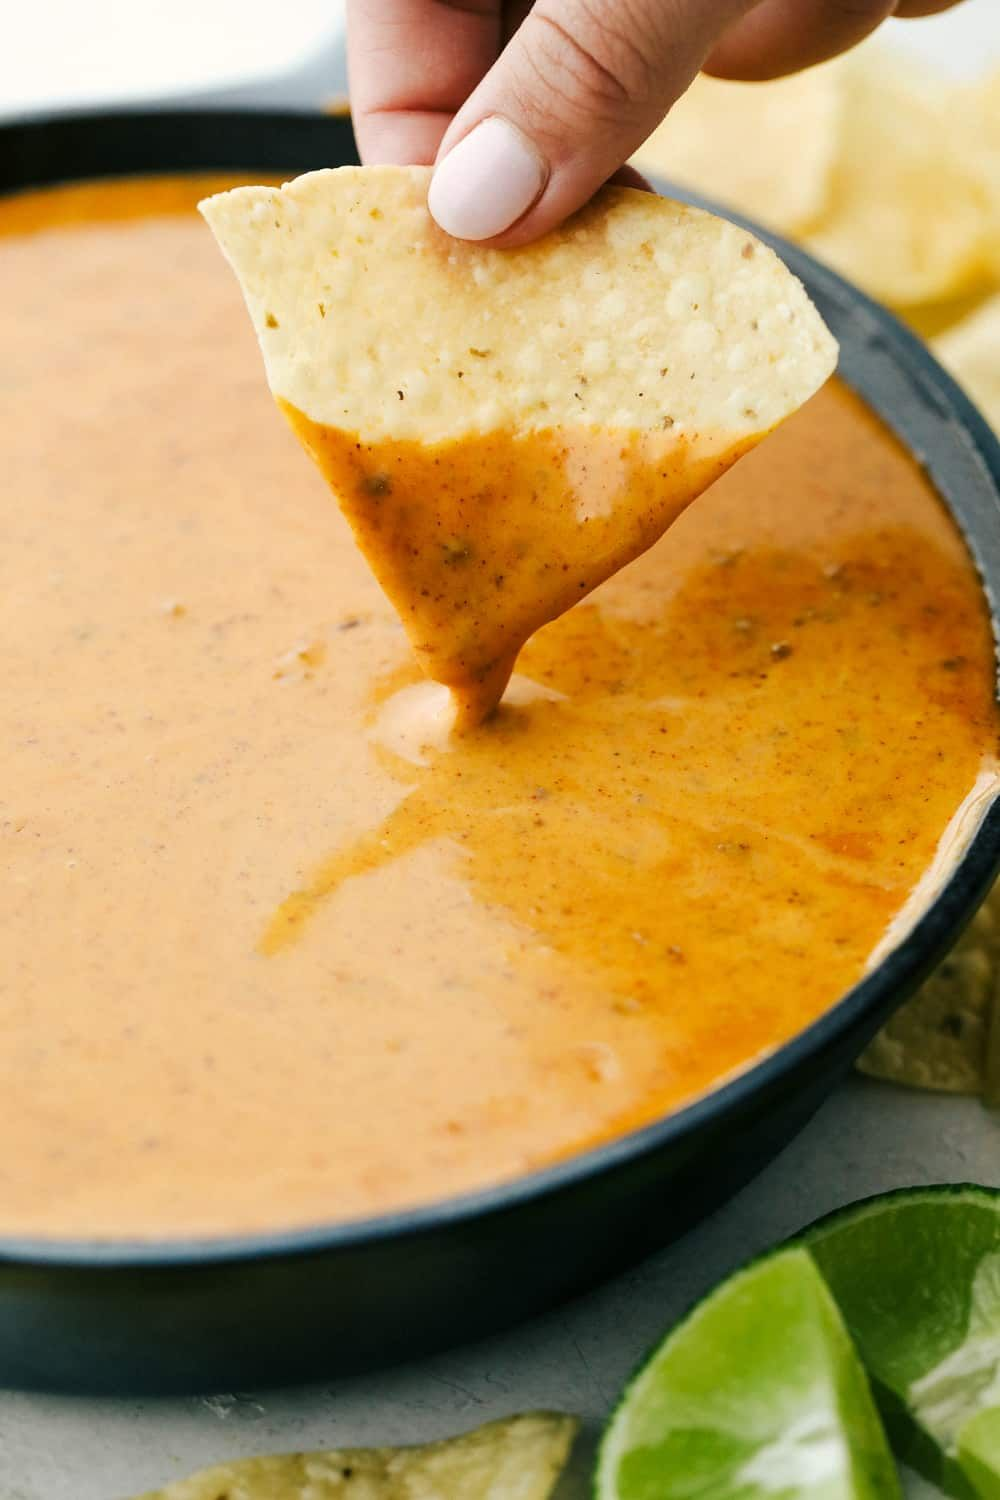 Amazing queso that tastes just like Chili's!